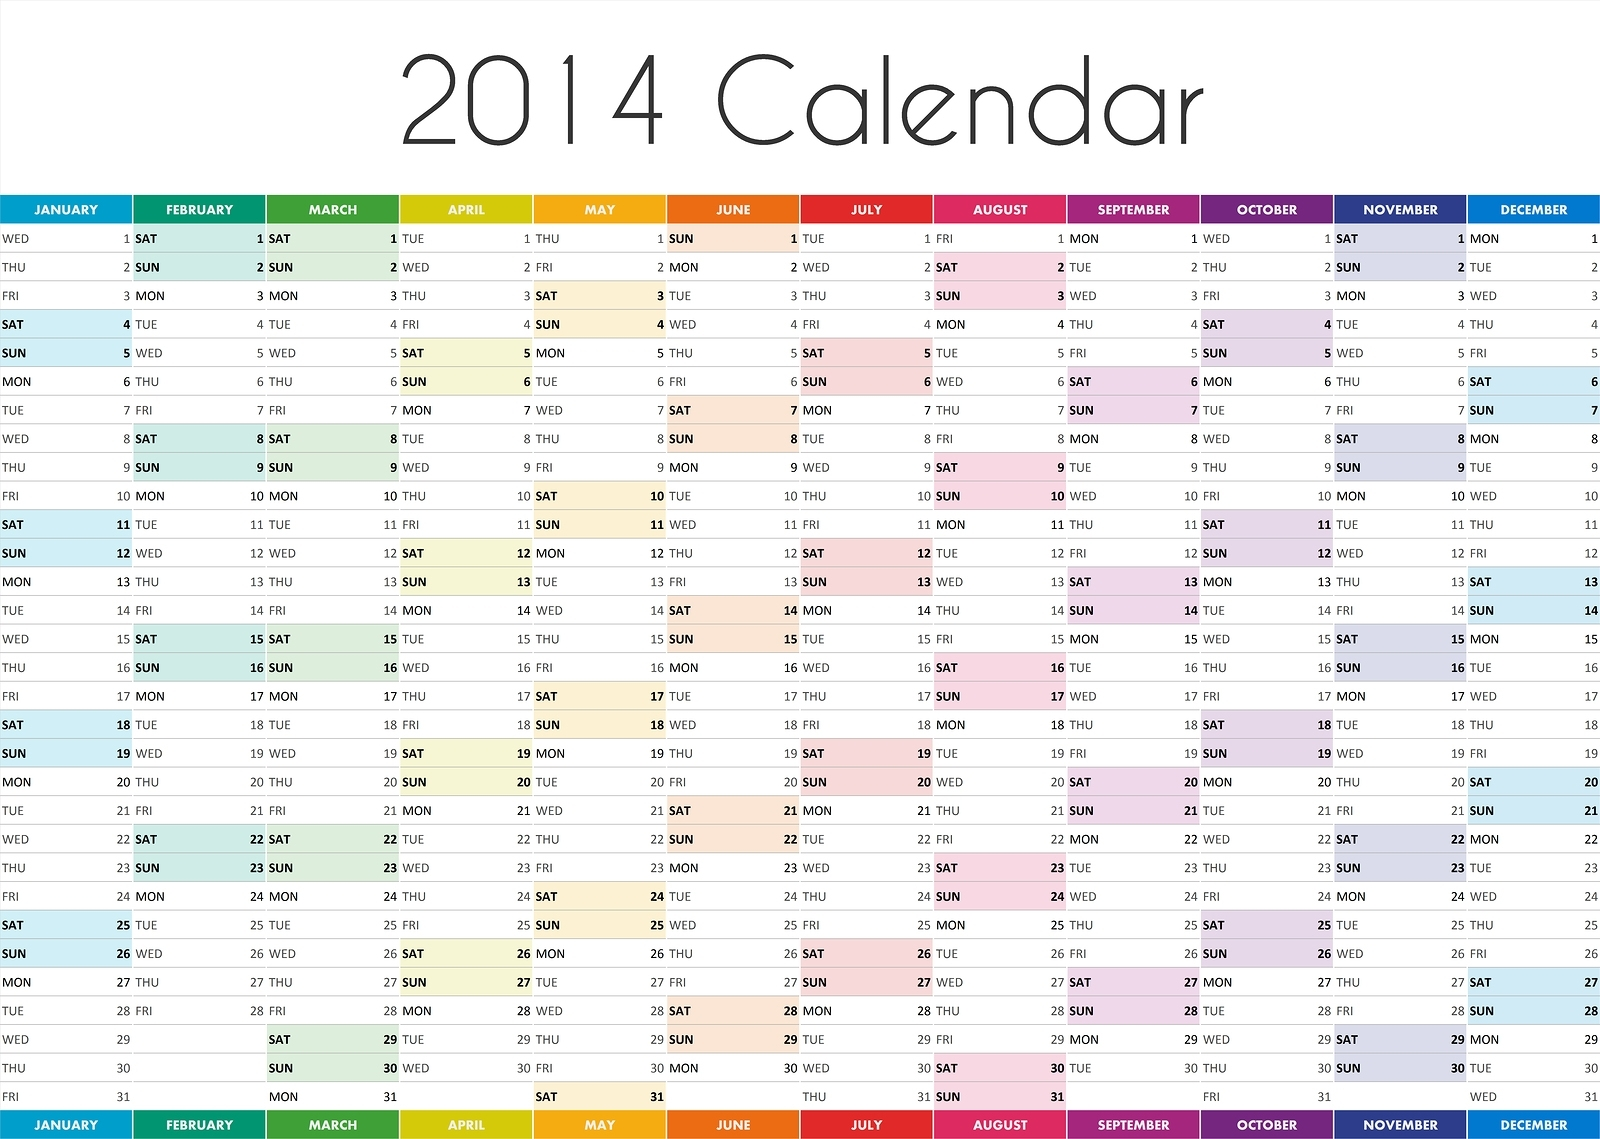 Monthly Calendar With Time Slots | Week Printable Calendar regarding Printable Monthly Calendar With Time Slots